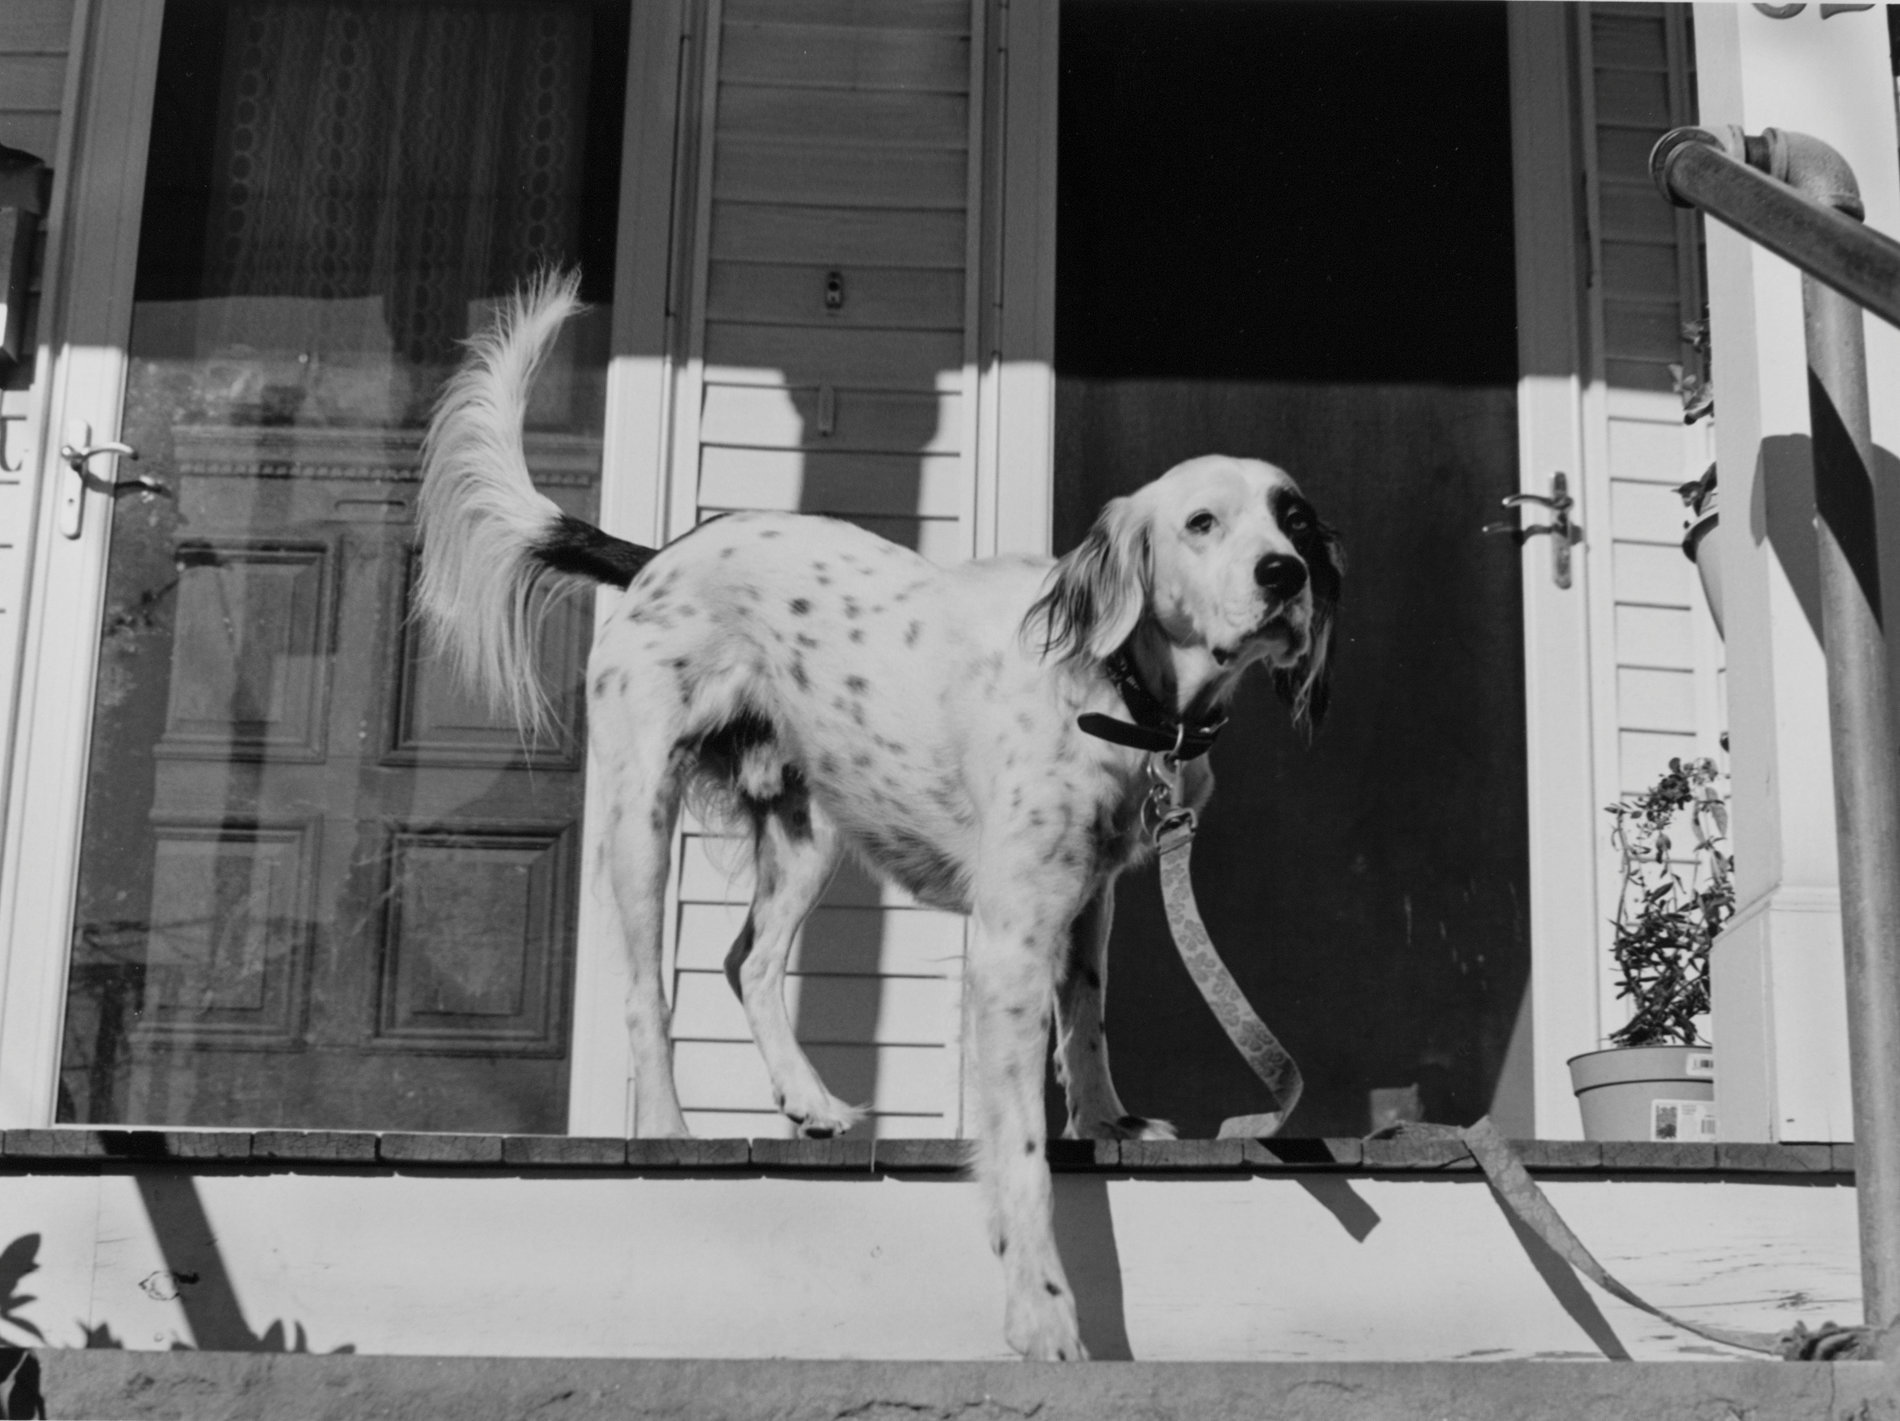 Dog Somerville porch.jpg